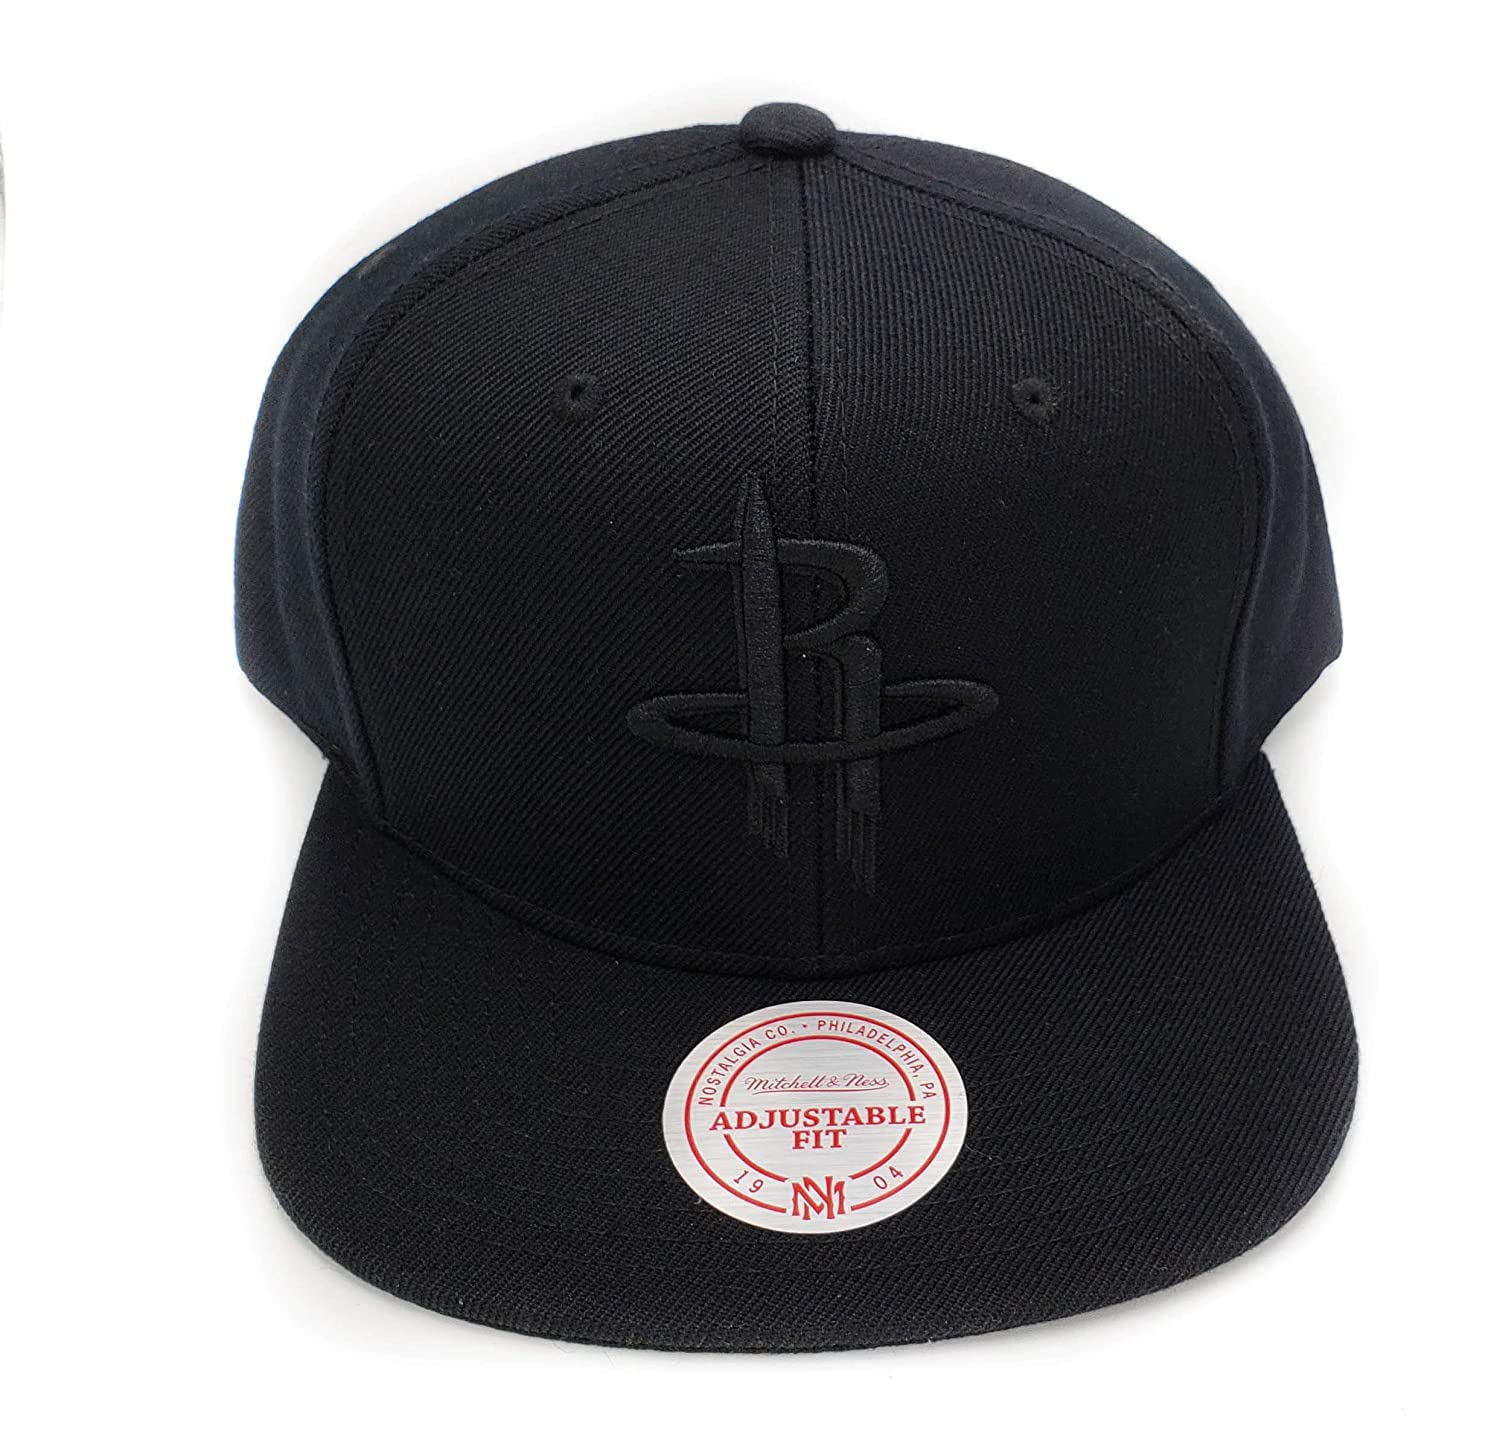 5322d5c04f33c Amazon.com   Mitchell   Ness Houston Rockets Black on Black HWC Current  Solid Wool Adjustable Snapback Hat NBA   Sports   Outdoors